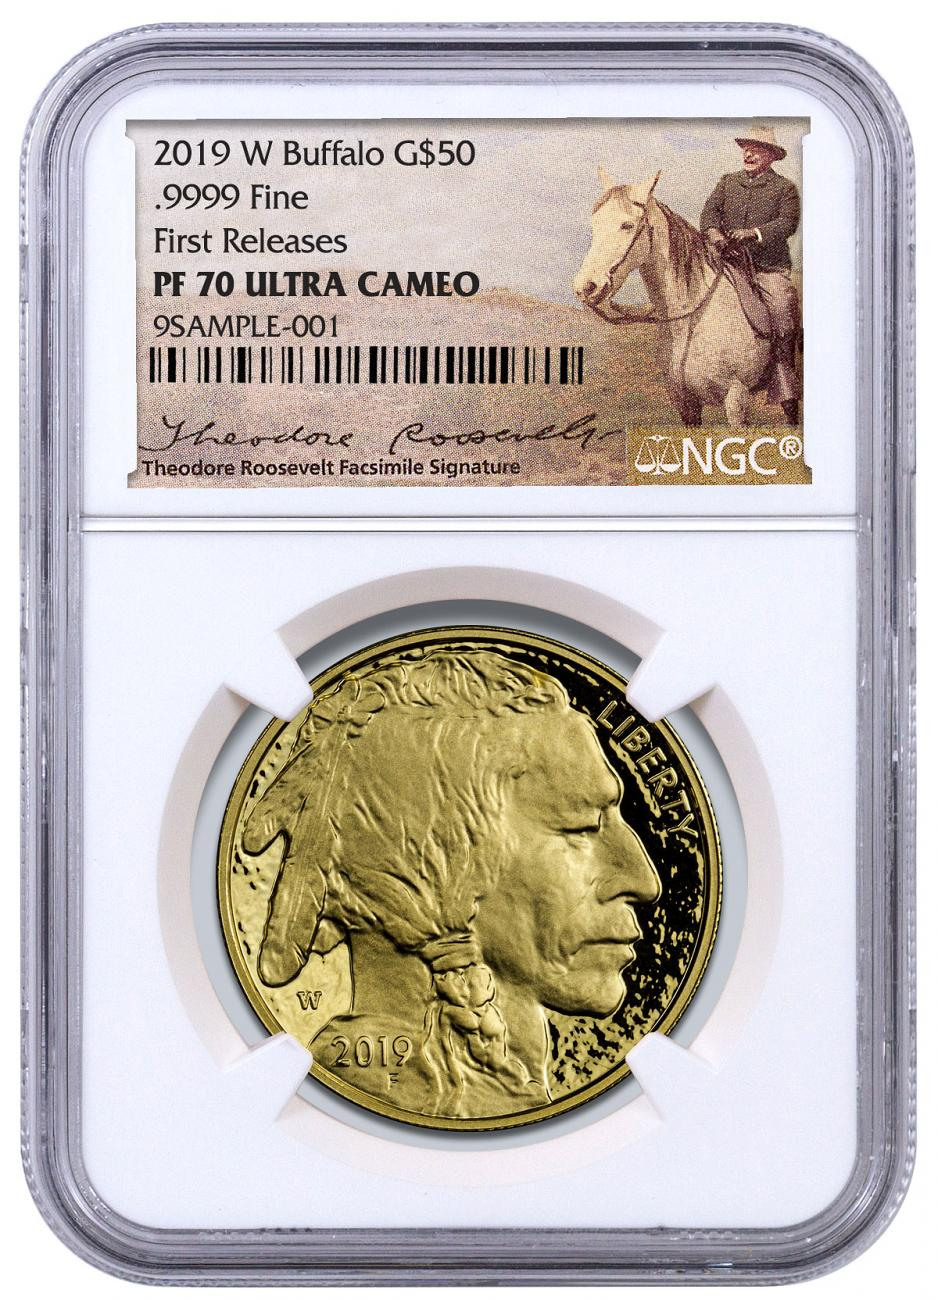 2019-W 1 oz Gold Buffalo Proof $50 Coin NGC PF70 UC FR Exclusive Teddy Roosevelt Label